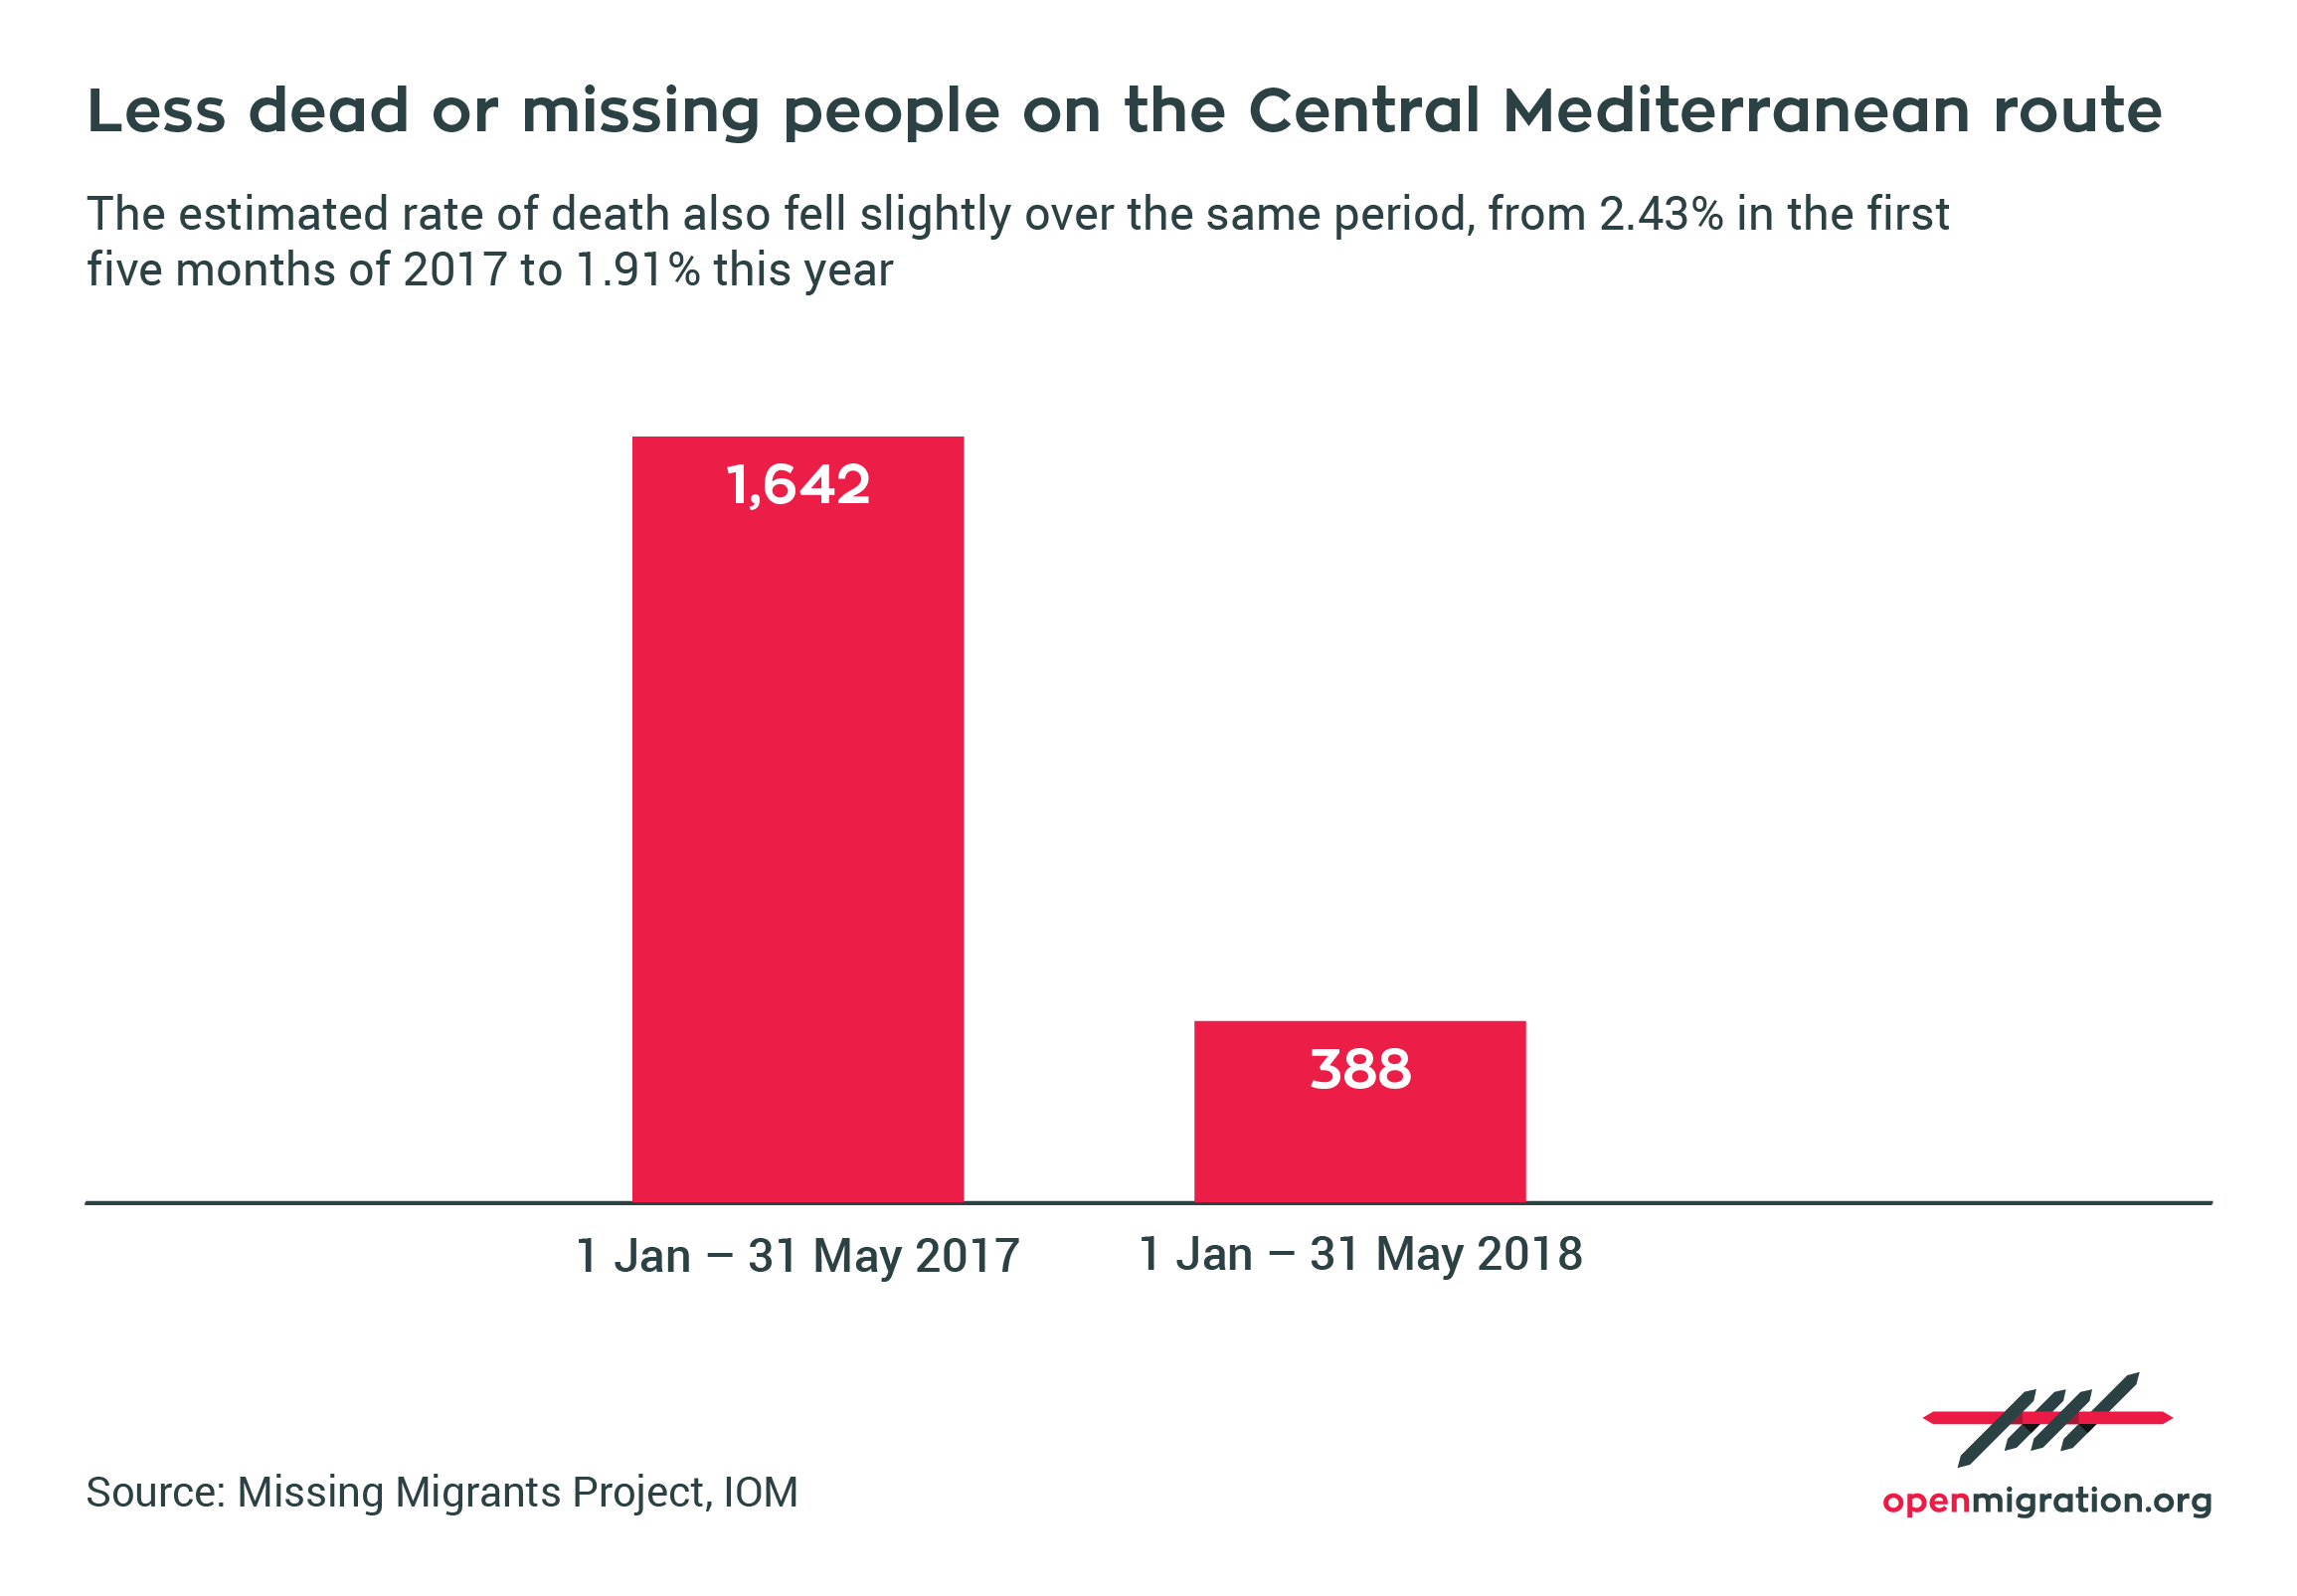 Dead or missing people on the Central Mediterranean route